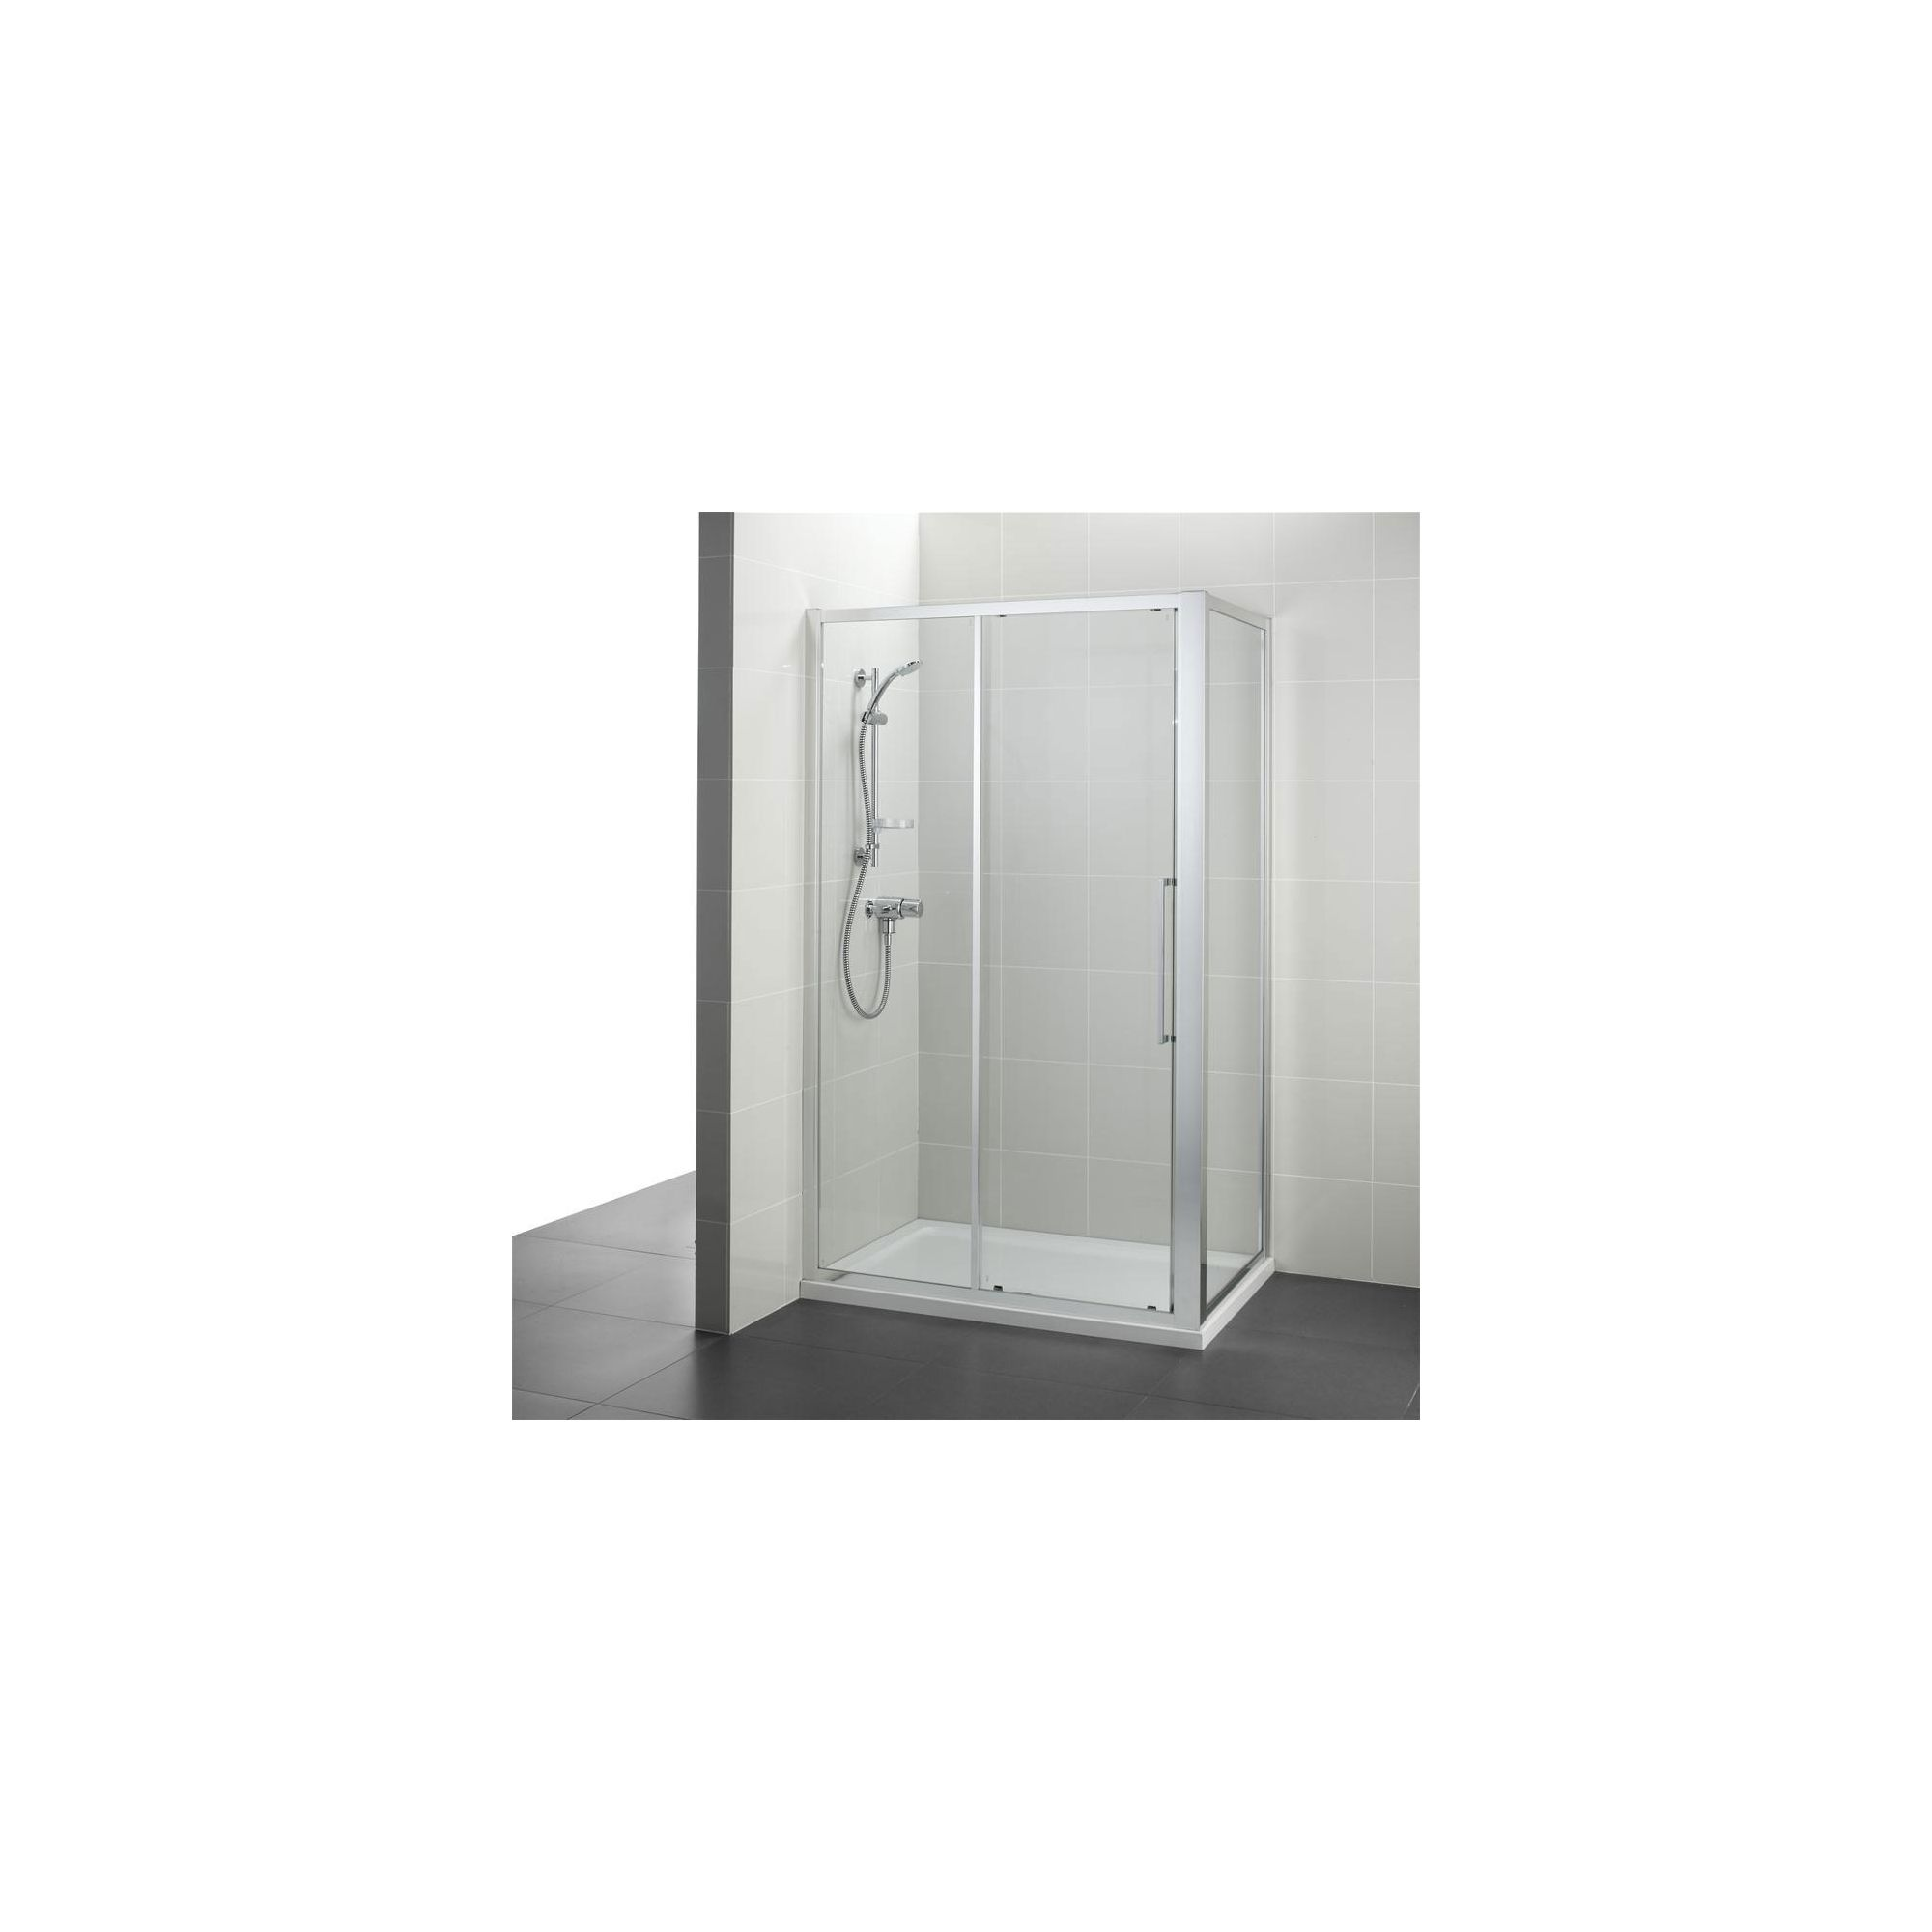 Ideal Standard Kubo Pivot Door Shower Enclosure, 760mm x 760mm, Bright Silver Frame, Low Profile Tray at Tesco Direct